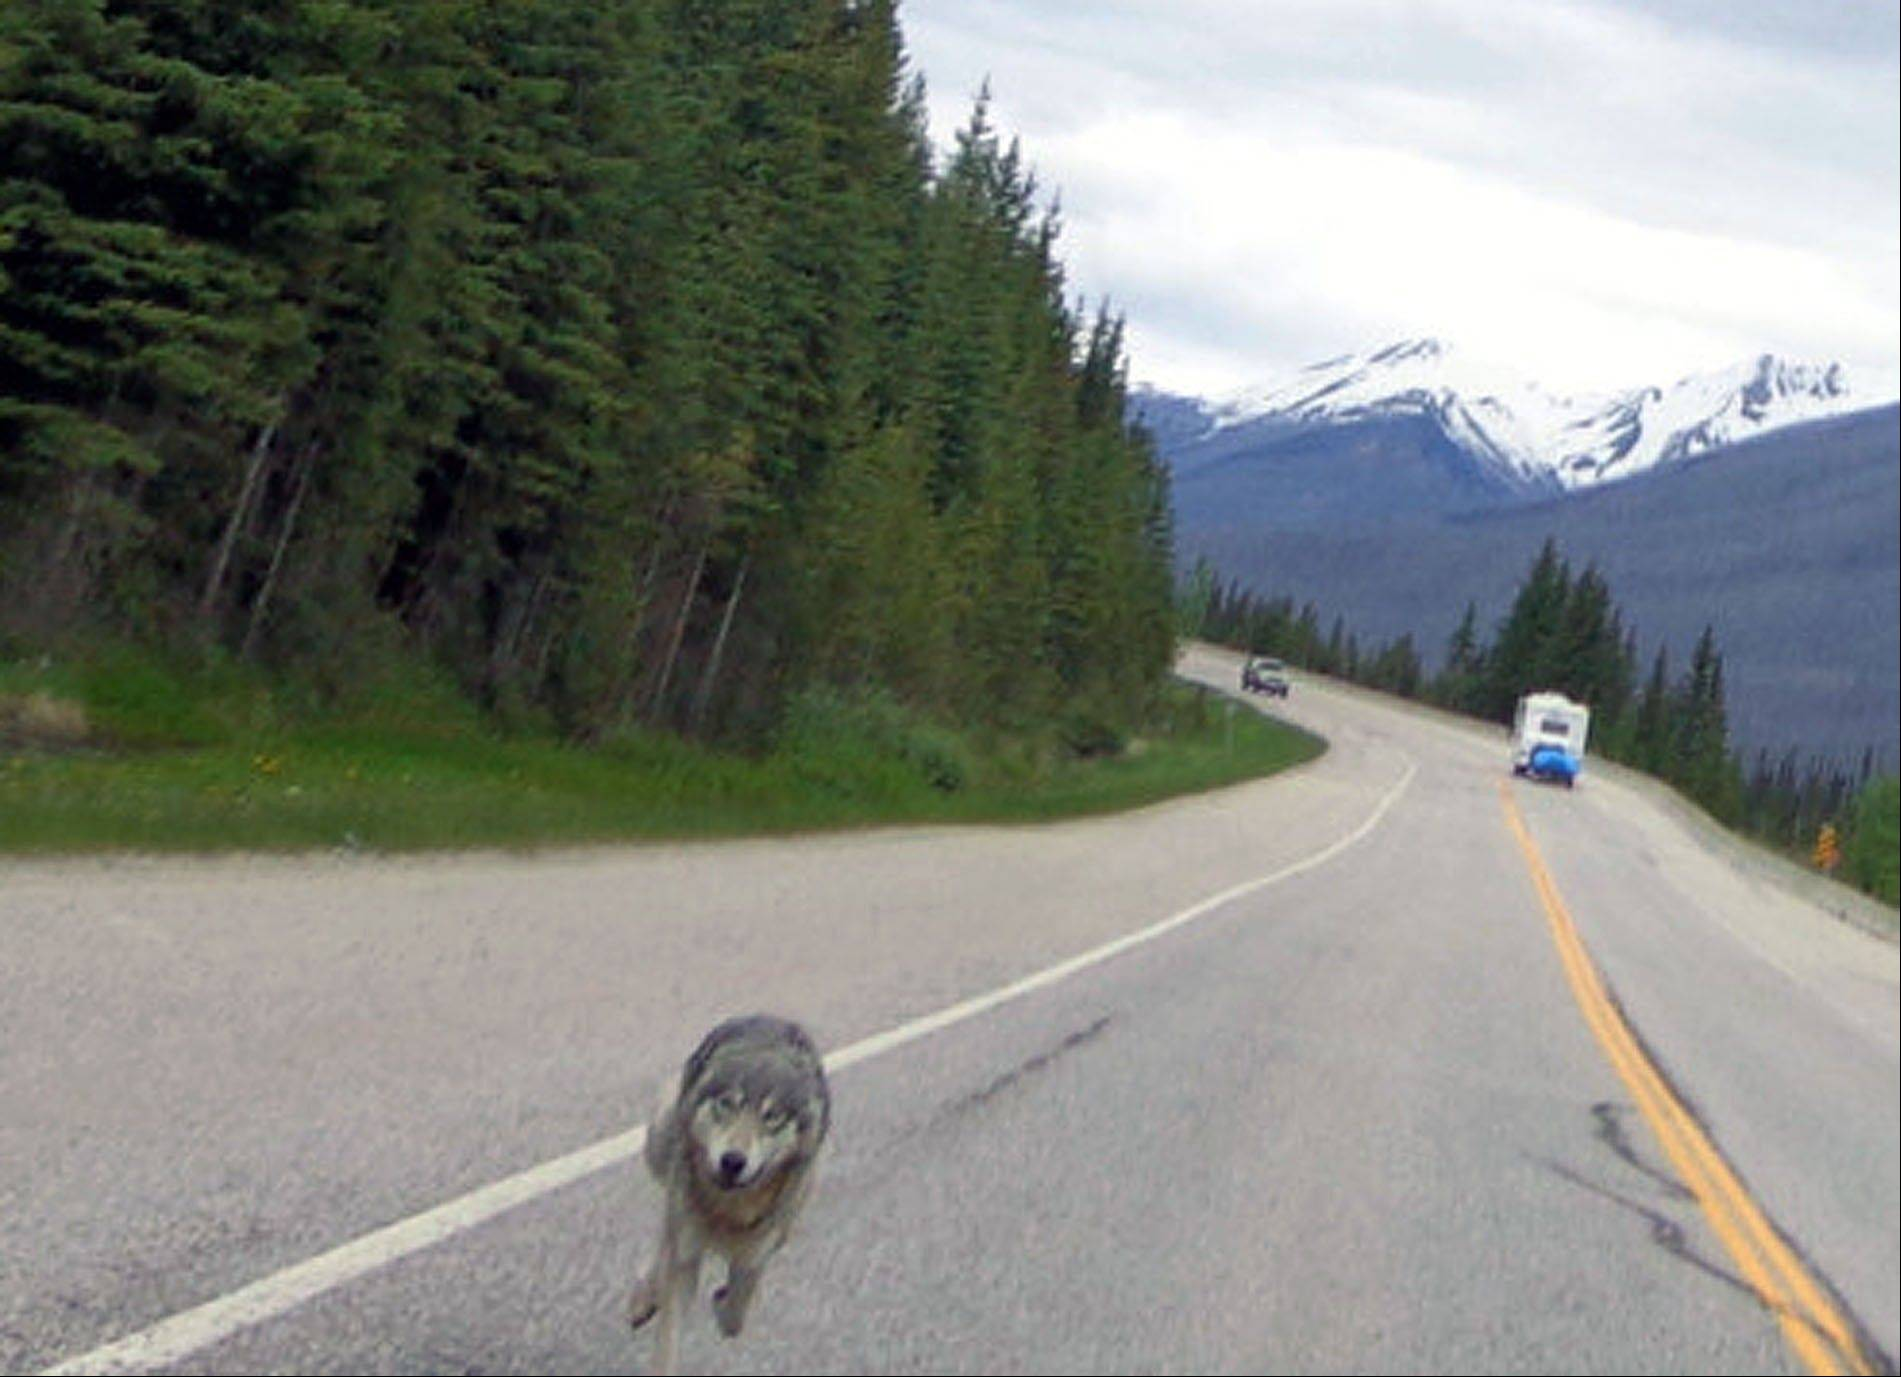 A wolf chases Tim Bartlett�s motorcycle down Highway 93 in Kootenay National Park highway in British Columbia, Canada.